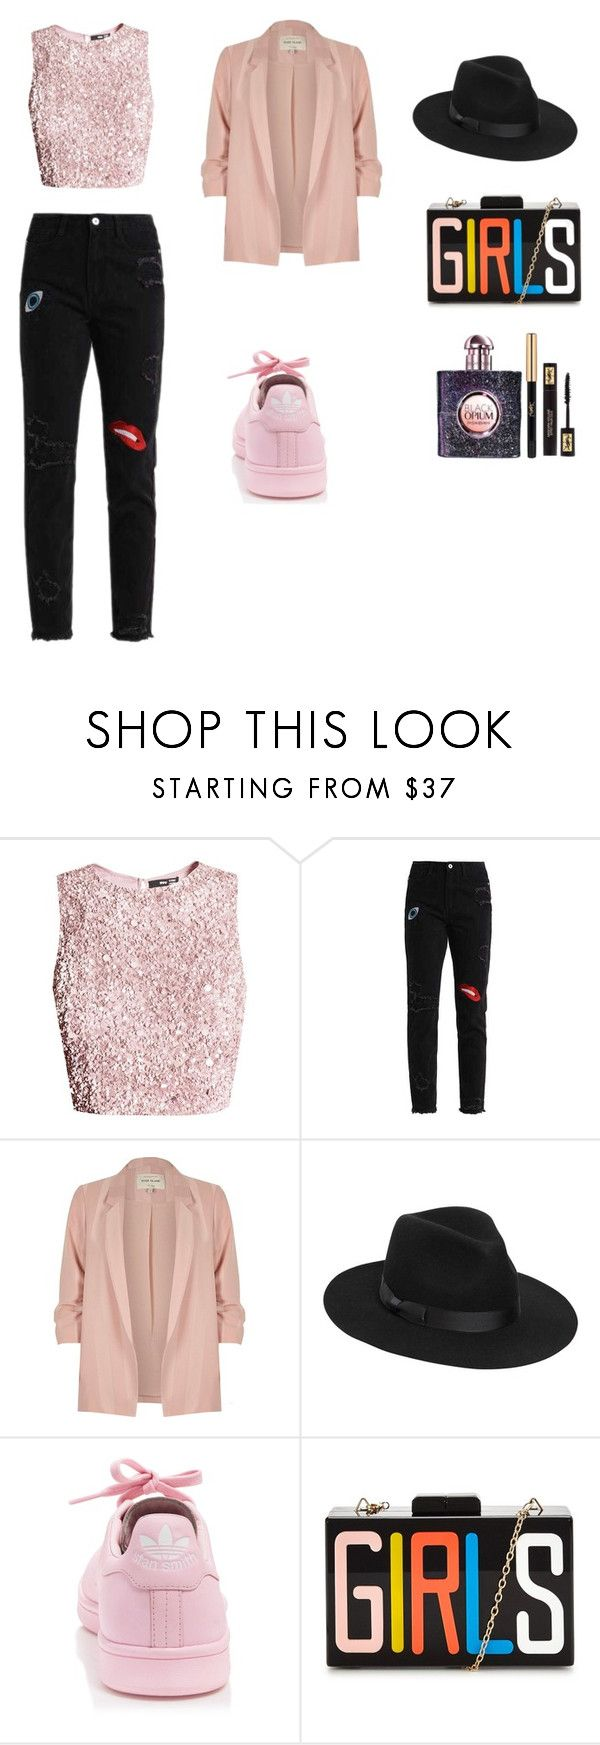 """""""Girlie stuff"""" by ustine on Polyvore featuring moda, River Island, Lack of Color, adidas i Yves Saint Laurent"""